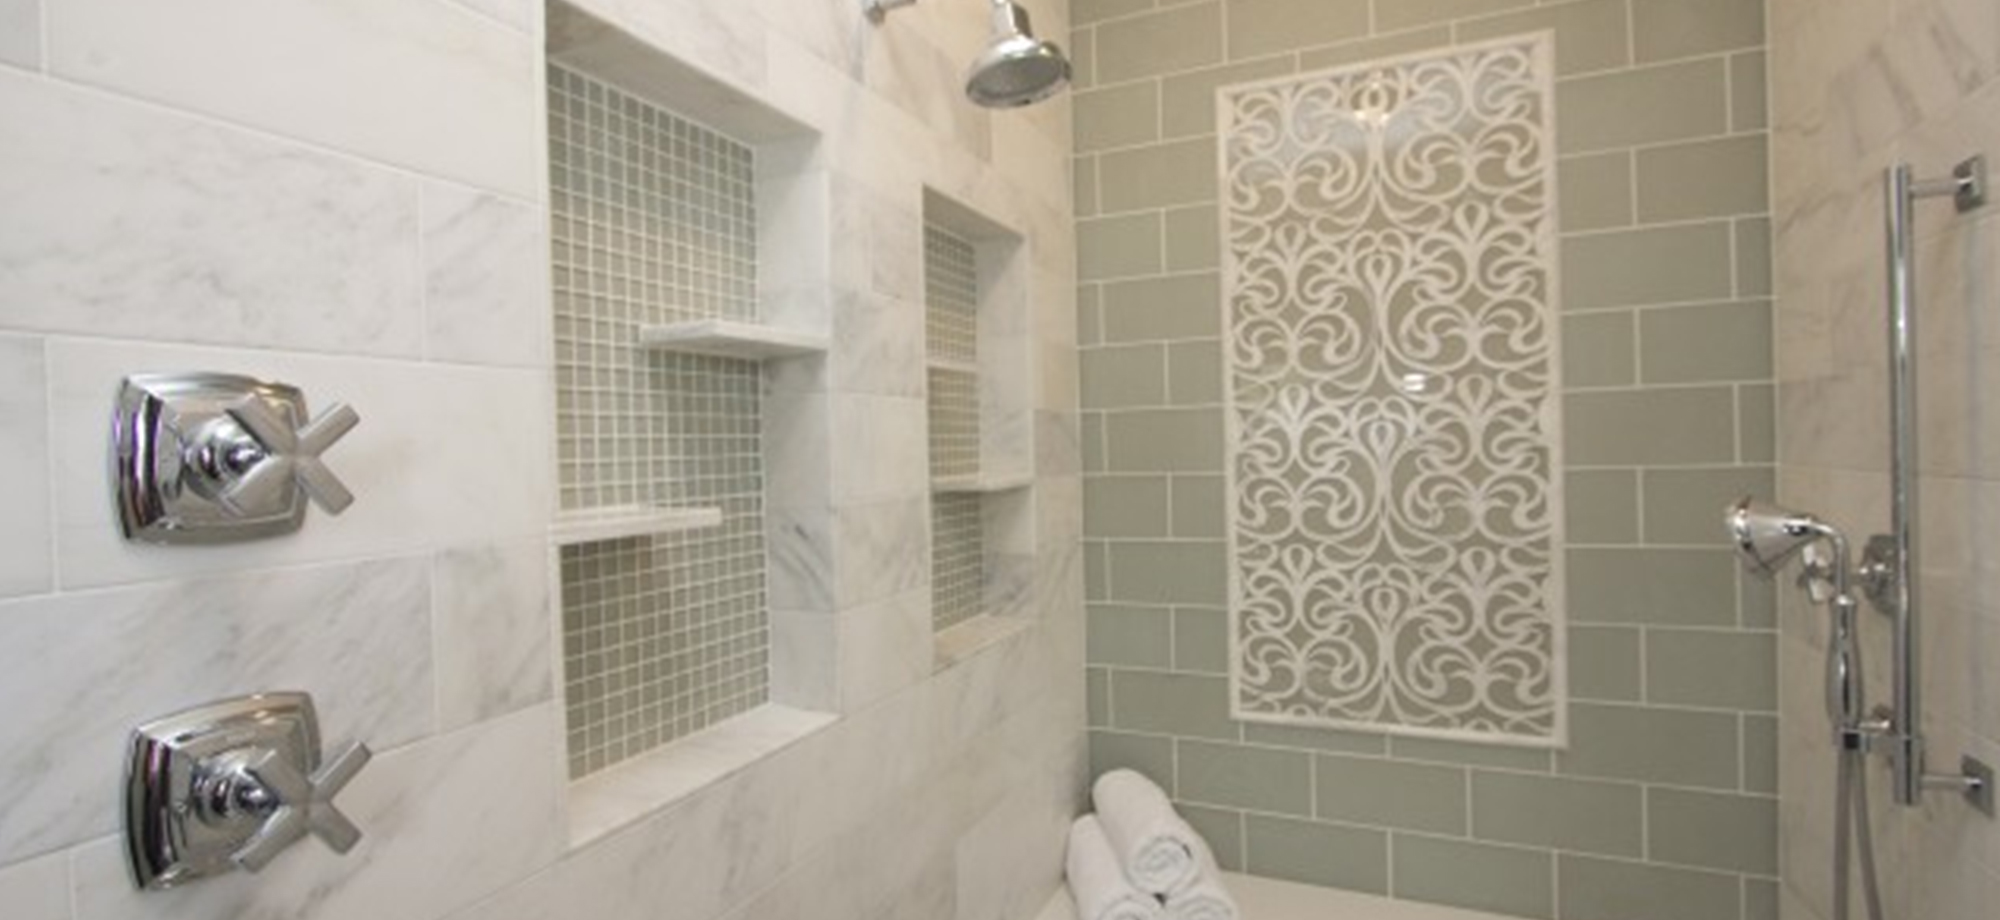 Tile store kitchen backsplash sarasota fl sandollar tile tile design bathroom pic dailygadgetfo Choice Image